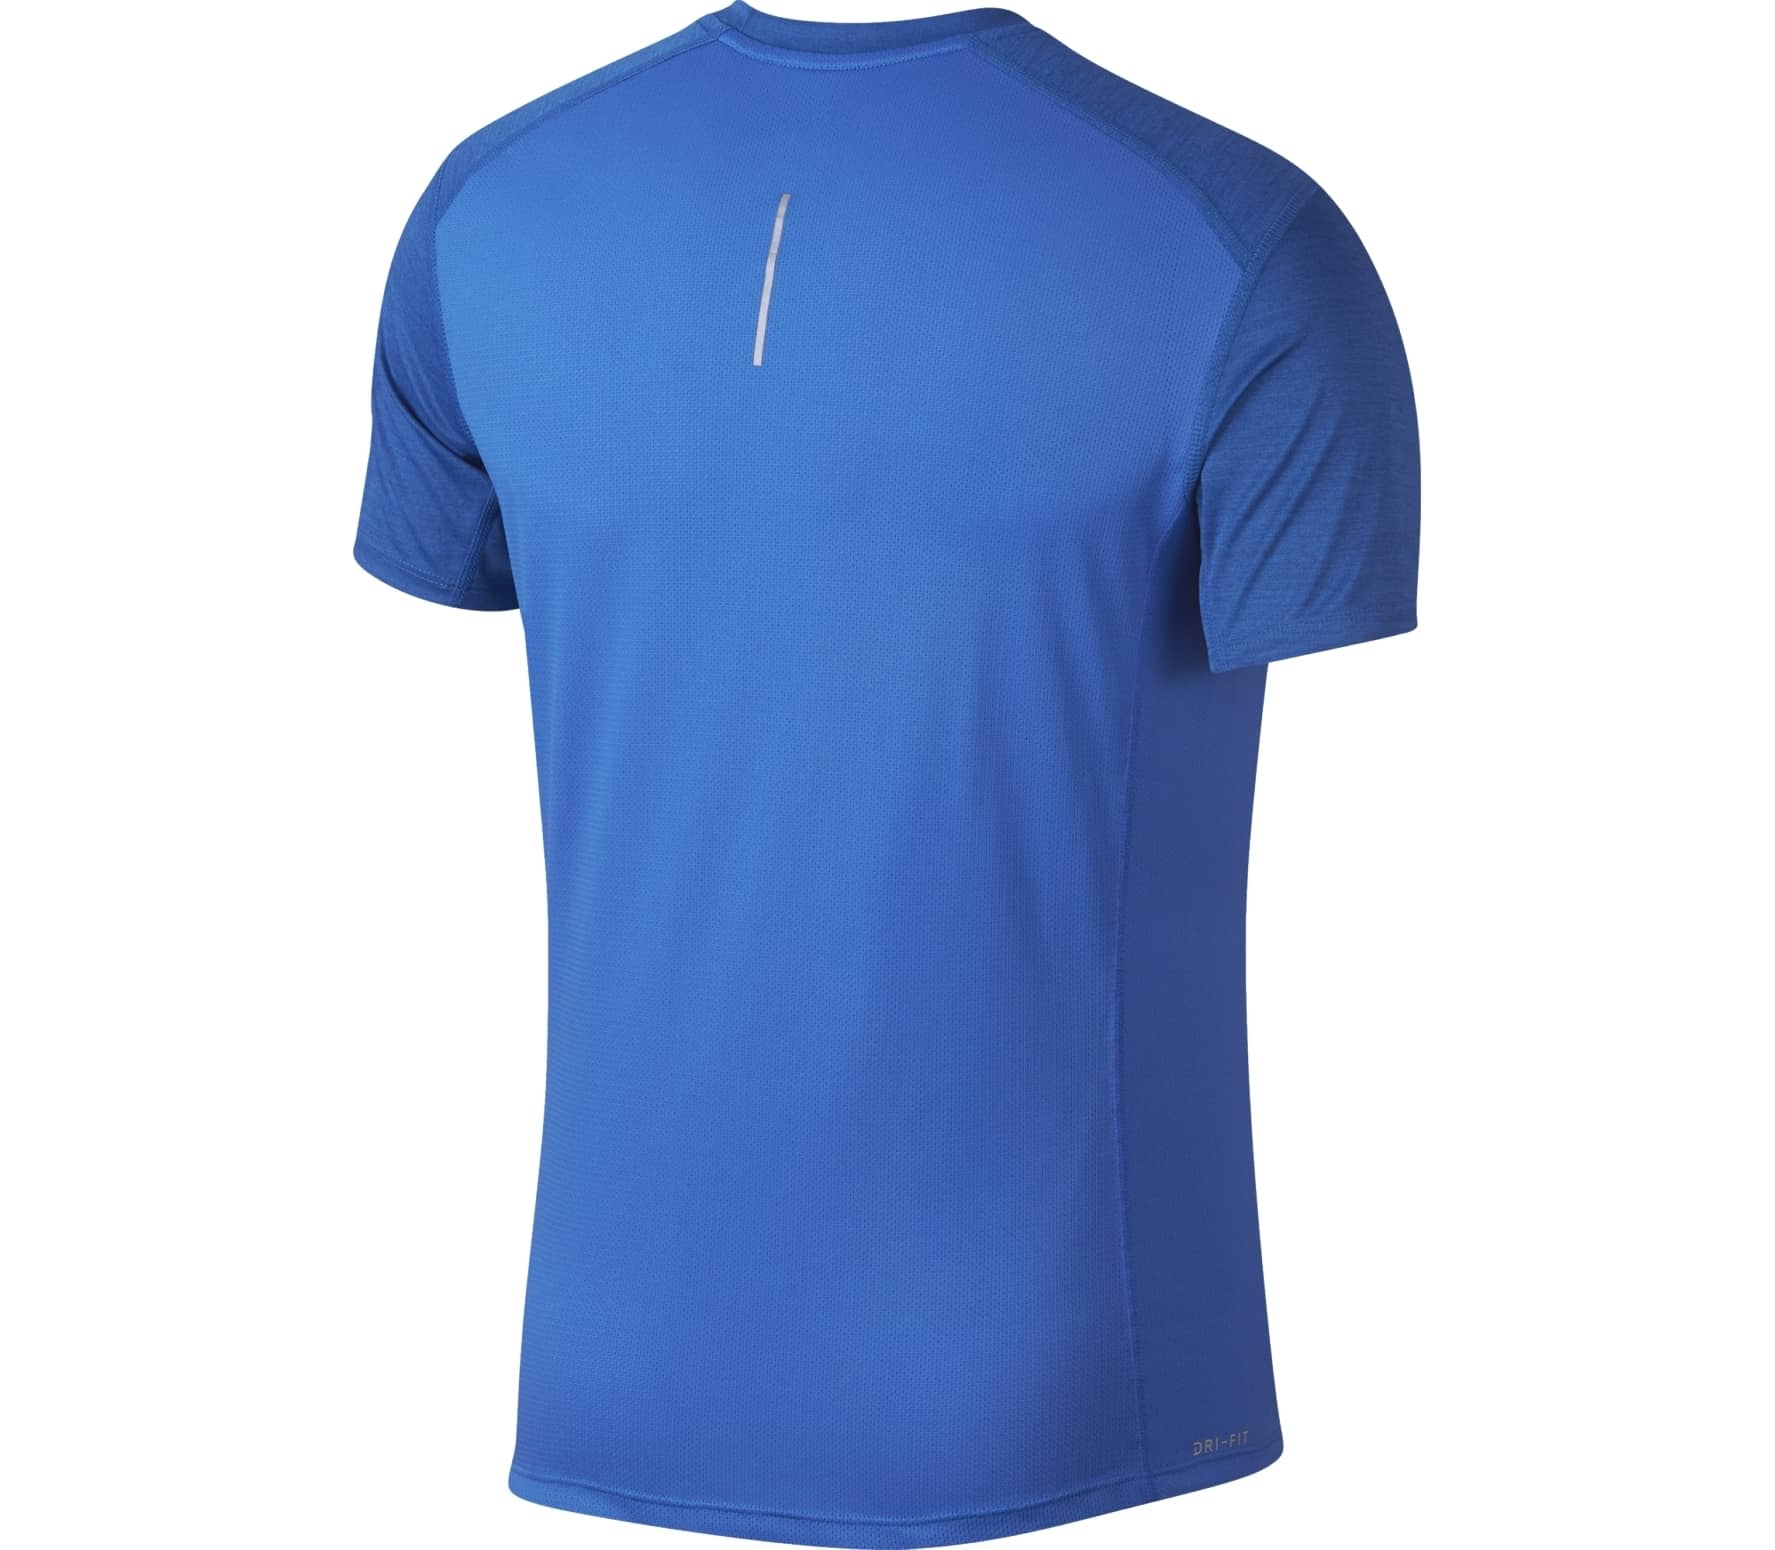 fb585979c9c4 Nike - Dry Miler men s running top (blue) - buy it at the Keller ...